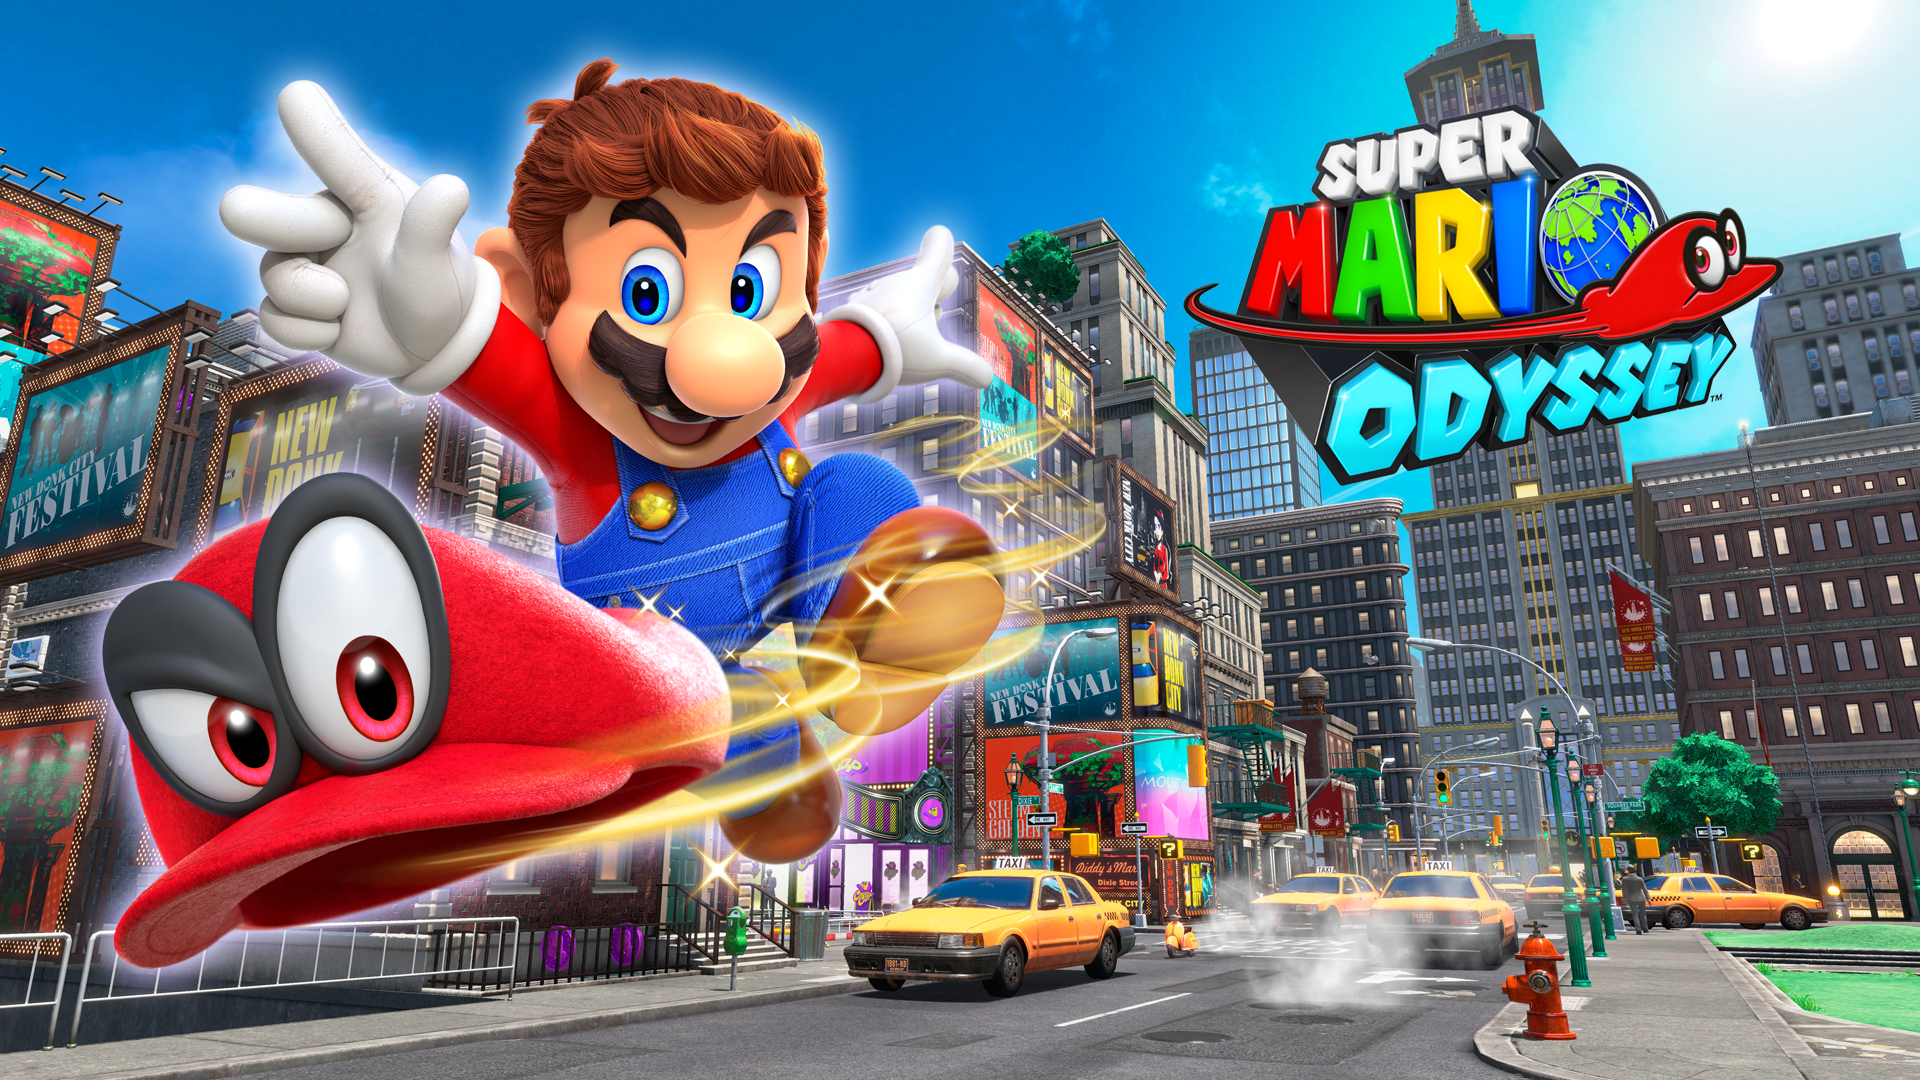 Super Mario Odyssey Is What Branding Is All About